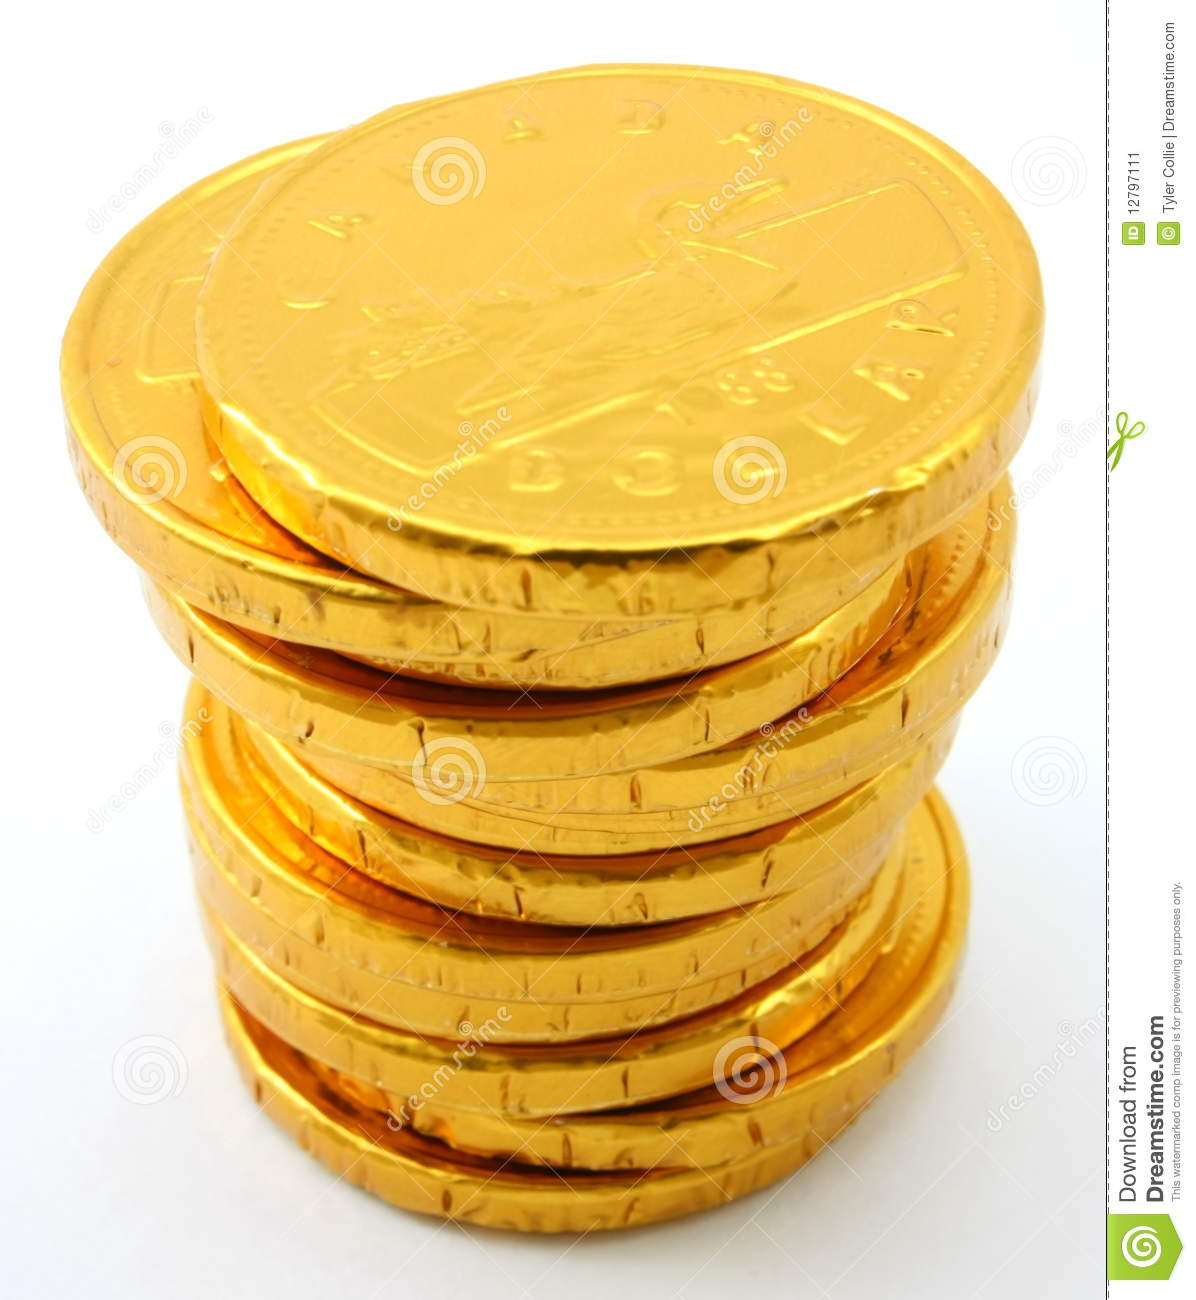 Single Stack Of Chocolate Gold Coins Stock Image - Image: 12797111